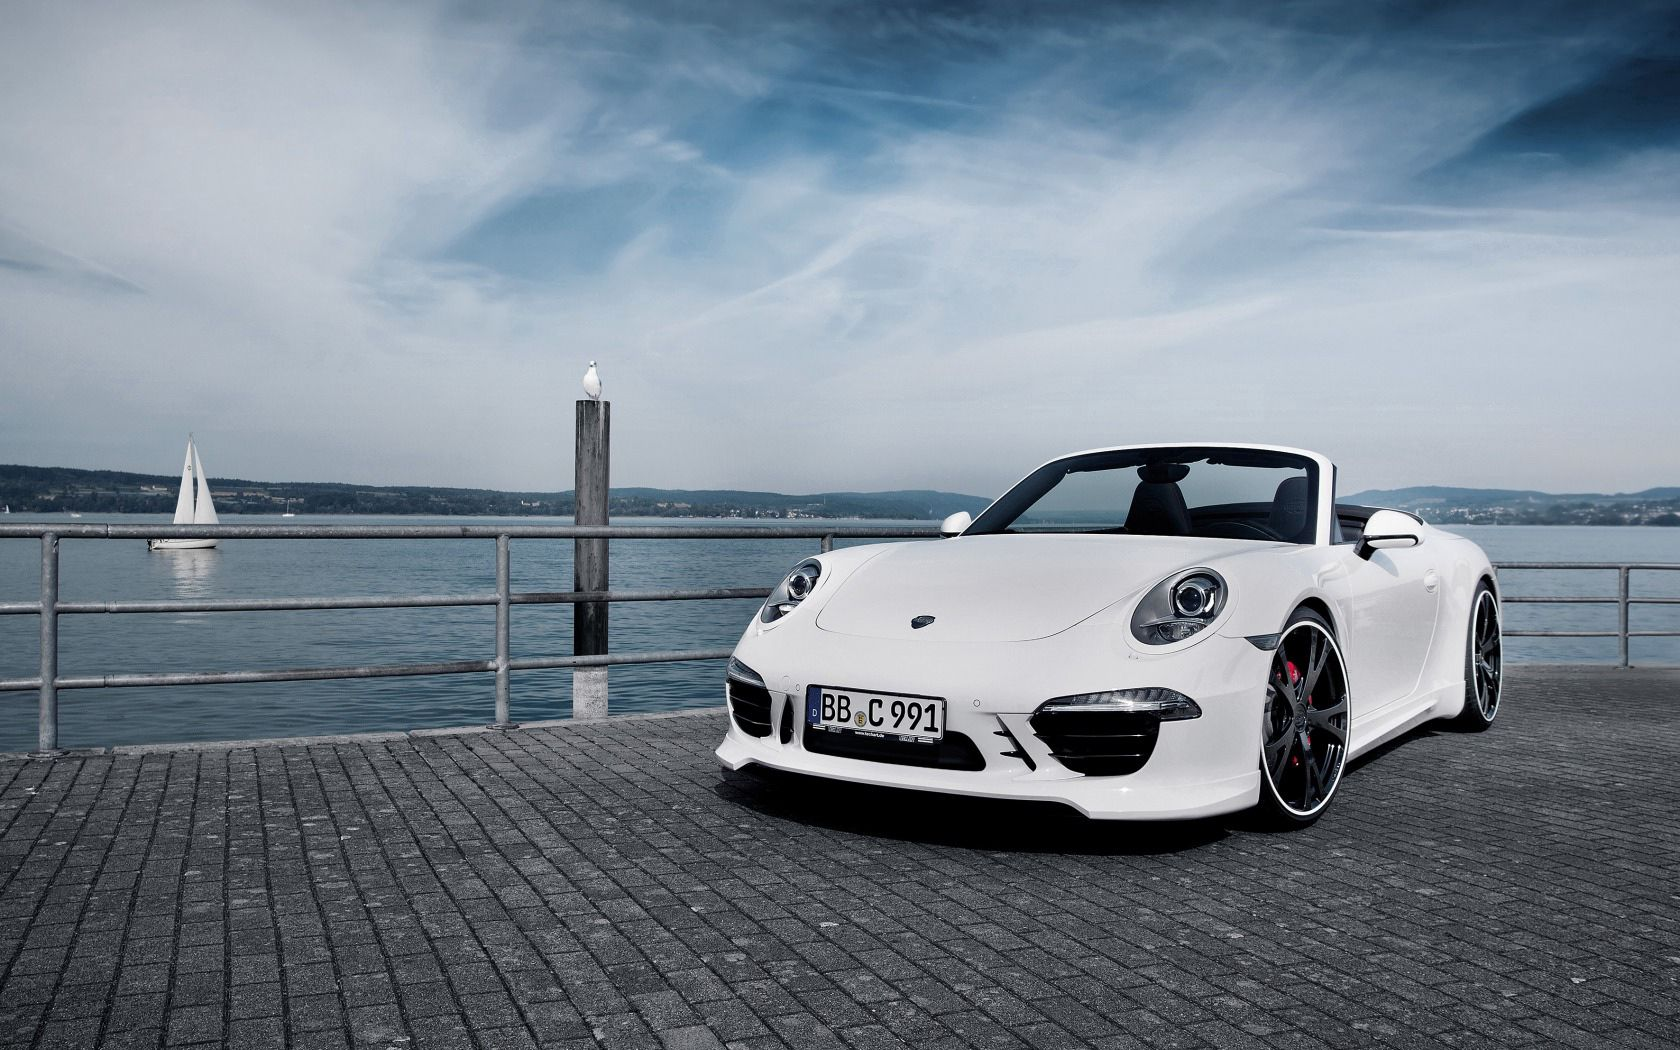 101870 free wallpaper 1440x2560 for phone, download images Porsche, Cars, Cabriolet, 911, Carrera S 1440x2560 for mobile